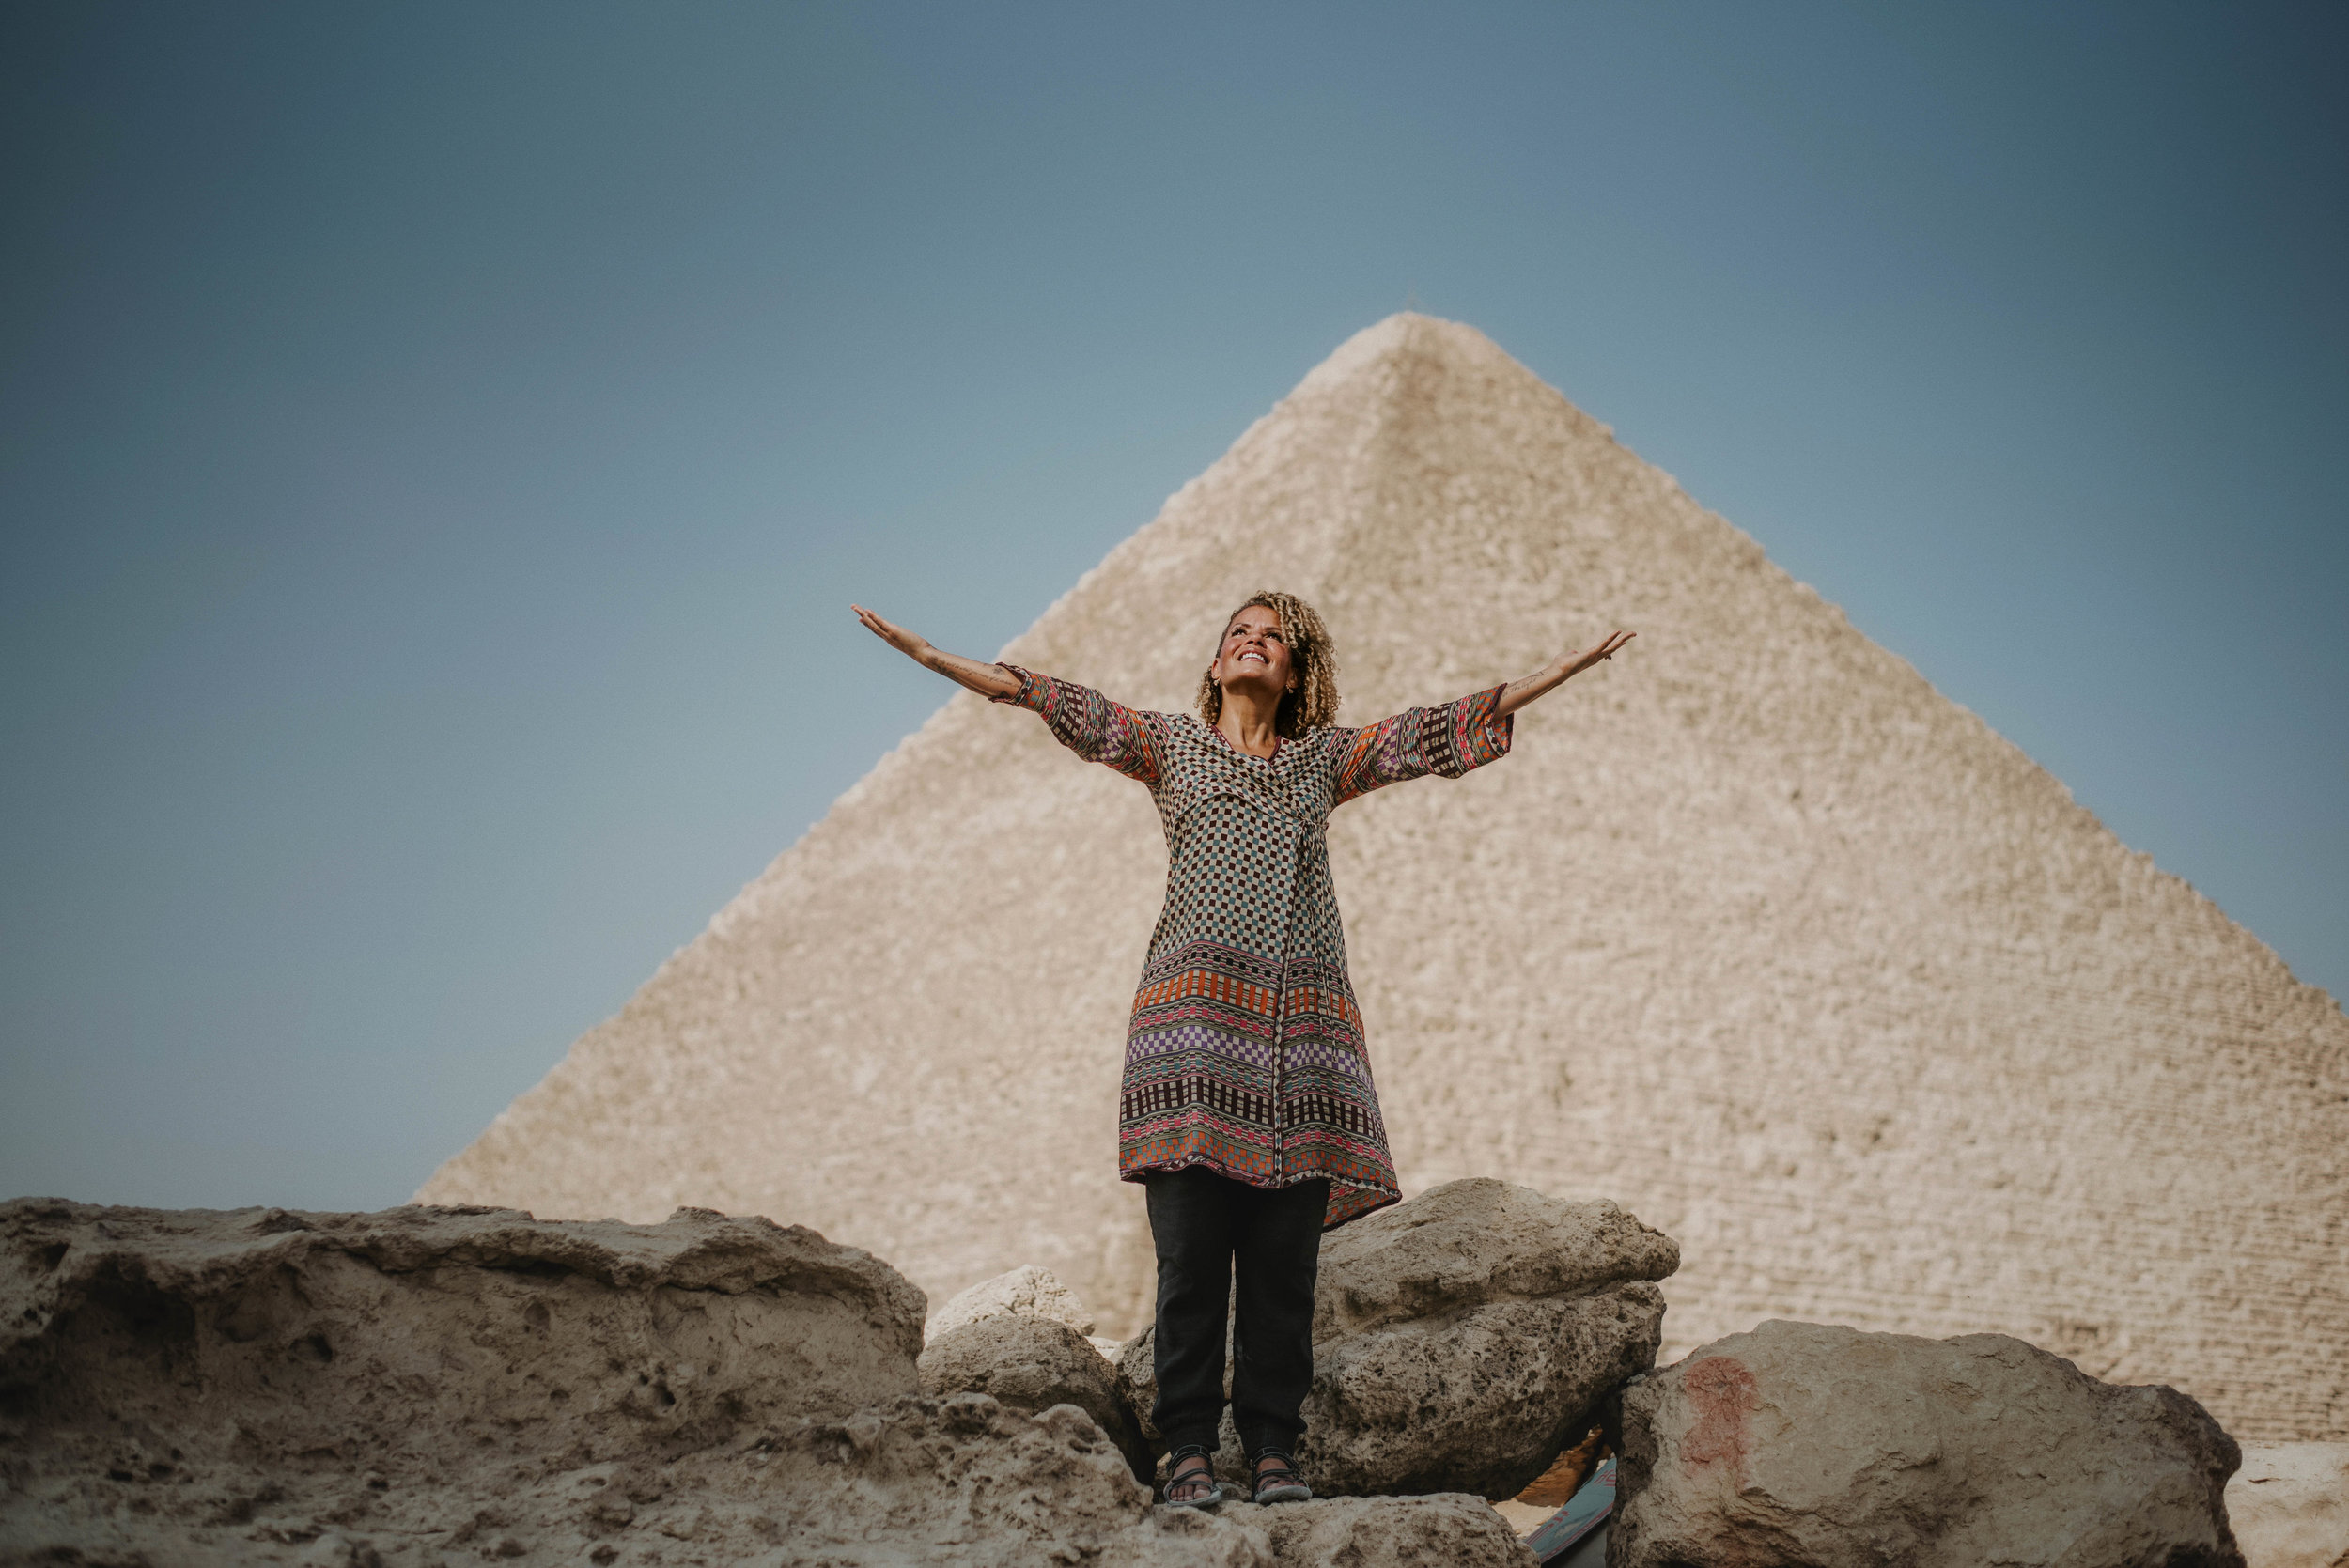 Photo by: Shoot My Travel Photographer Manar in Cairo